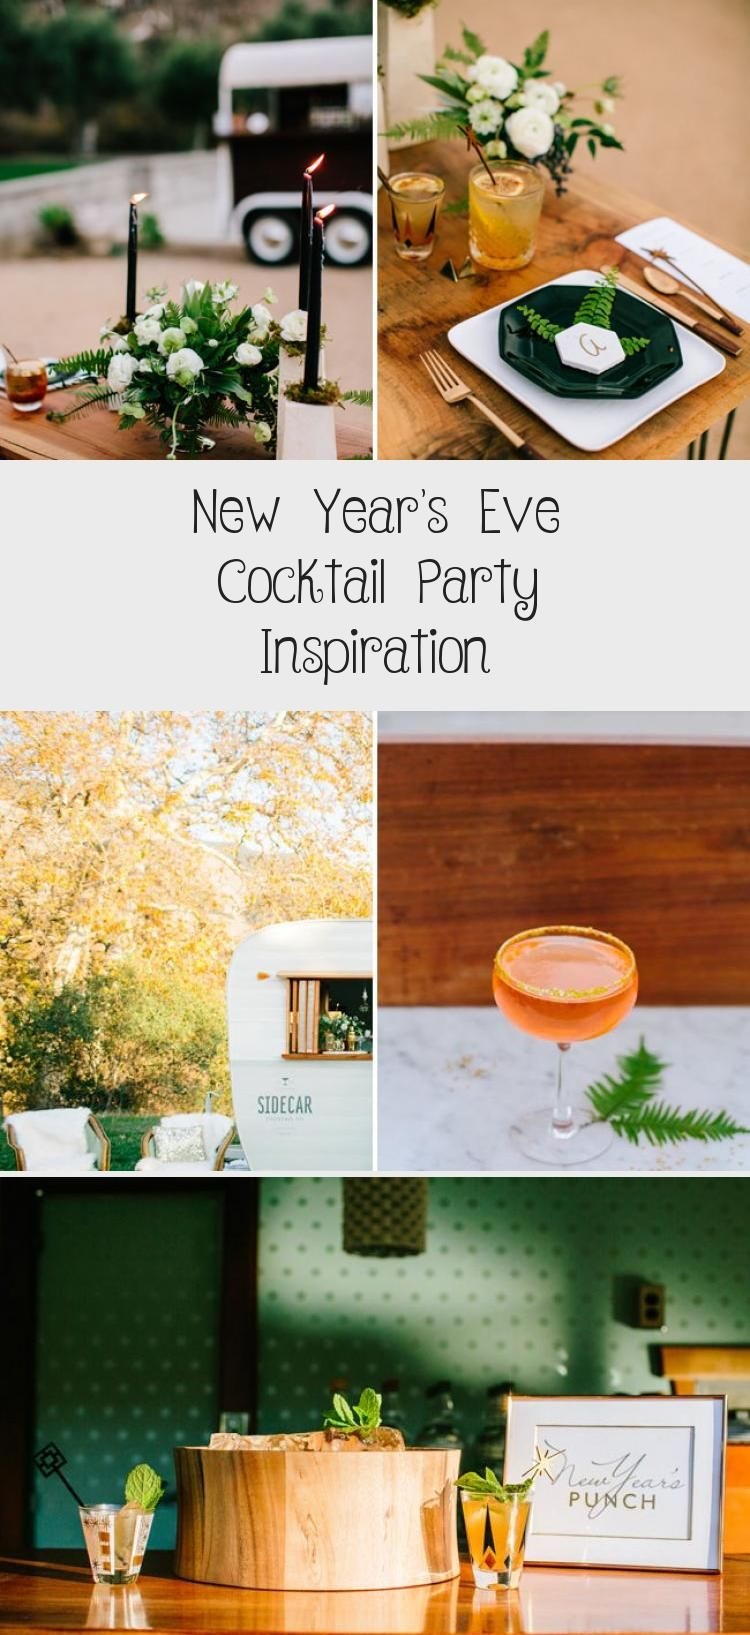 New Year's Eve Cocktail Party Inspiration Jewelrys in